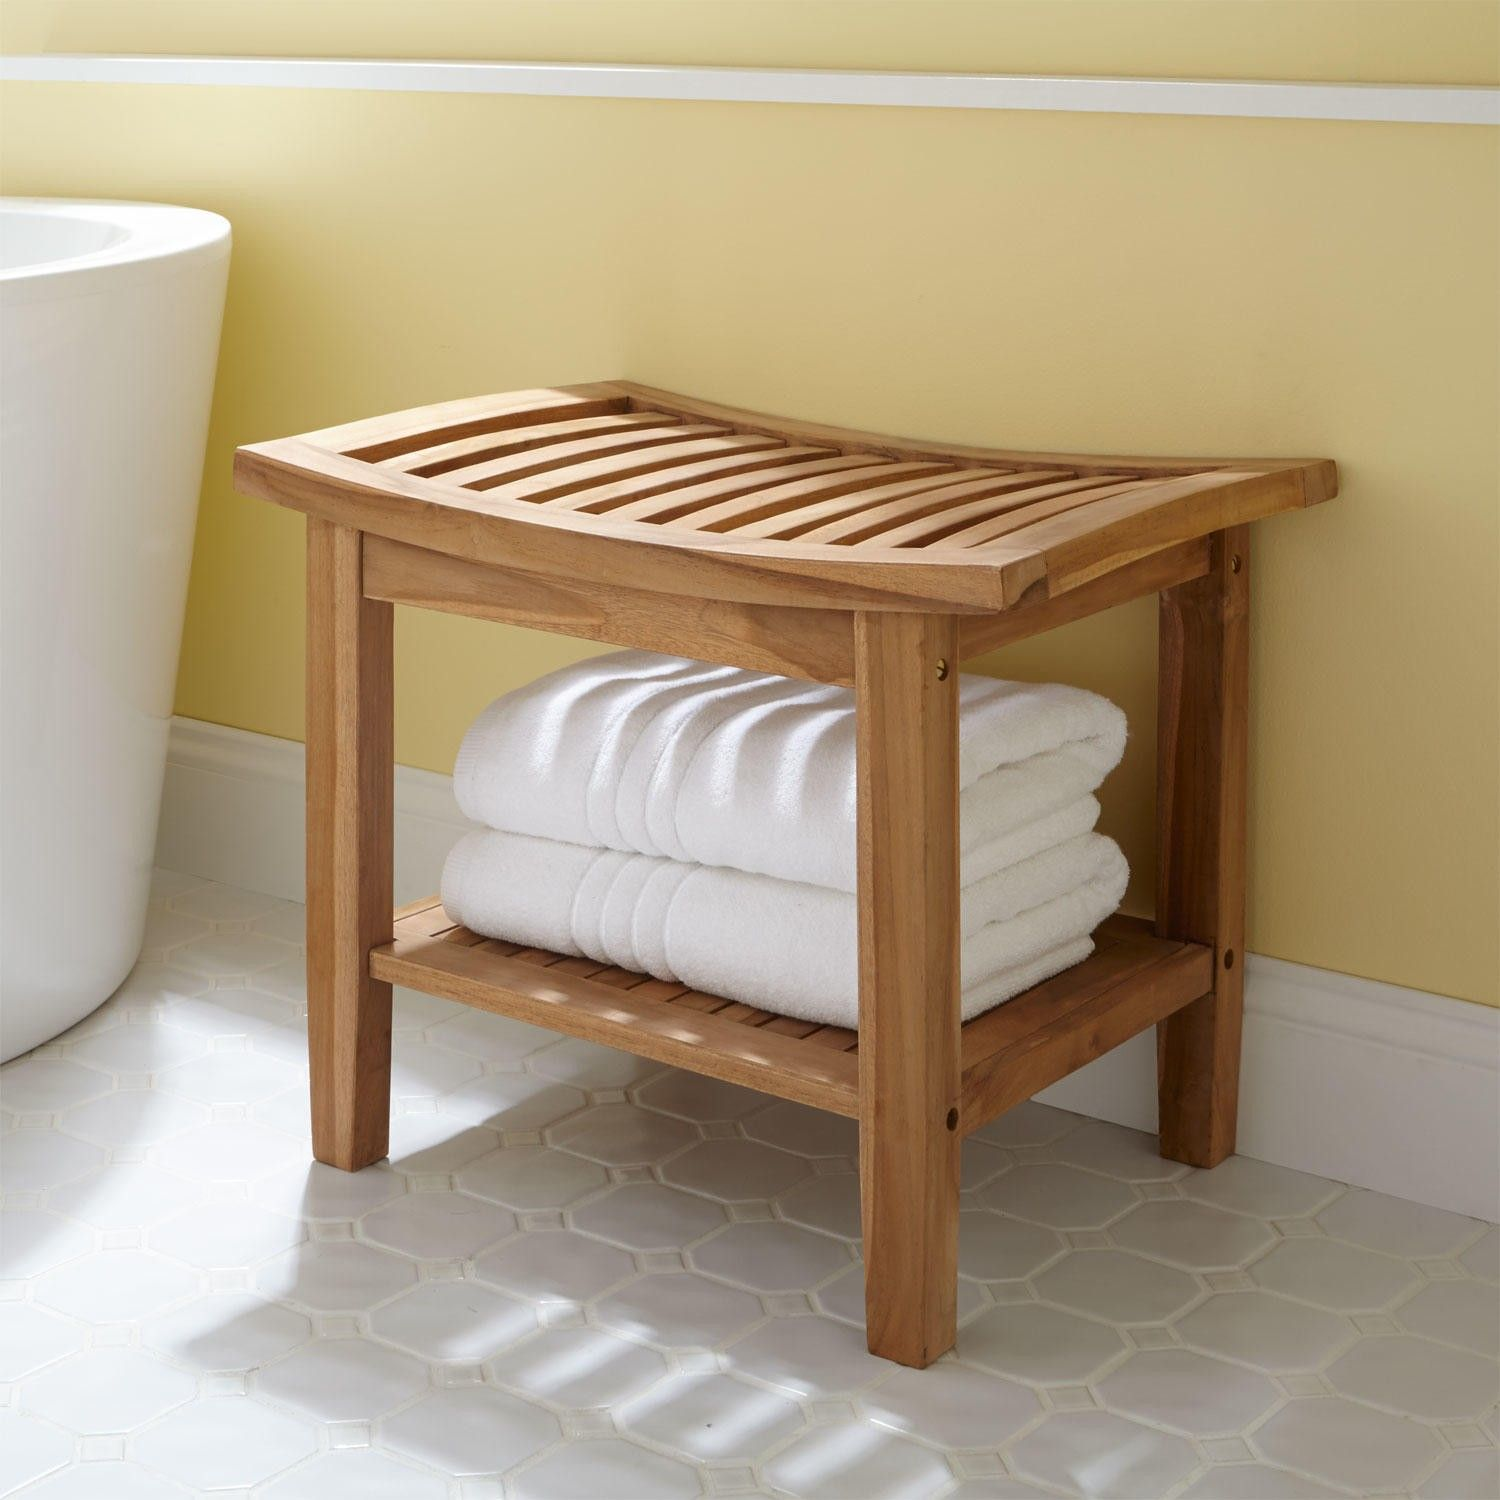 image quarter bamboo bathroom stool images about vanity stool on pinterest white vanity cottages and bermudas